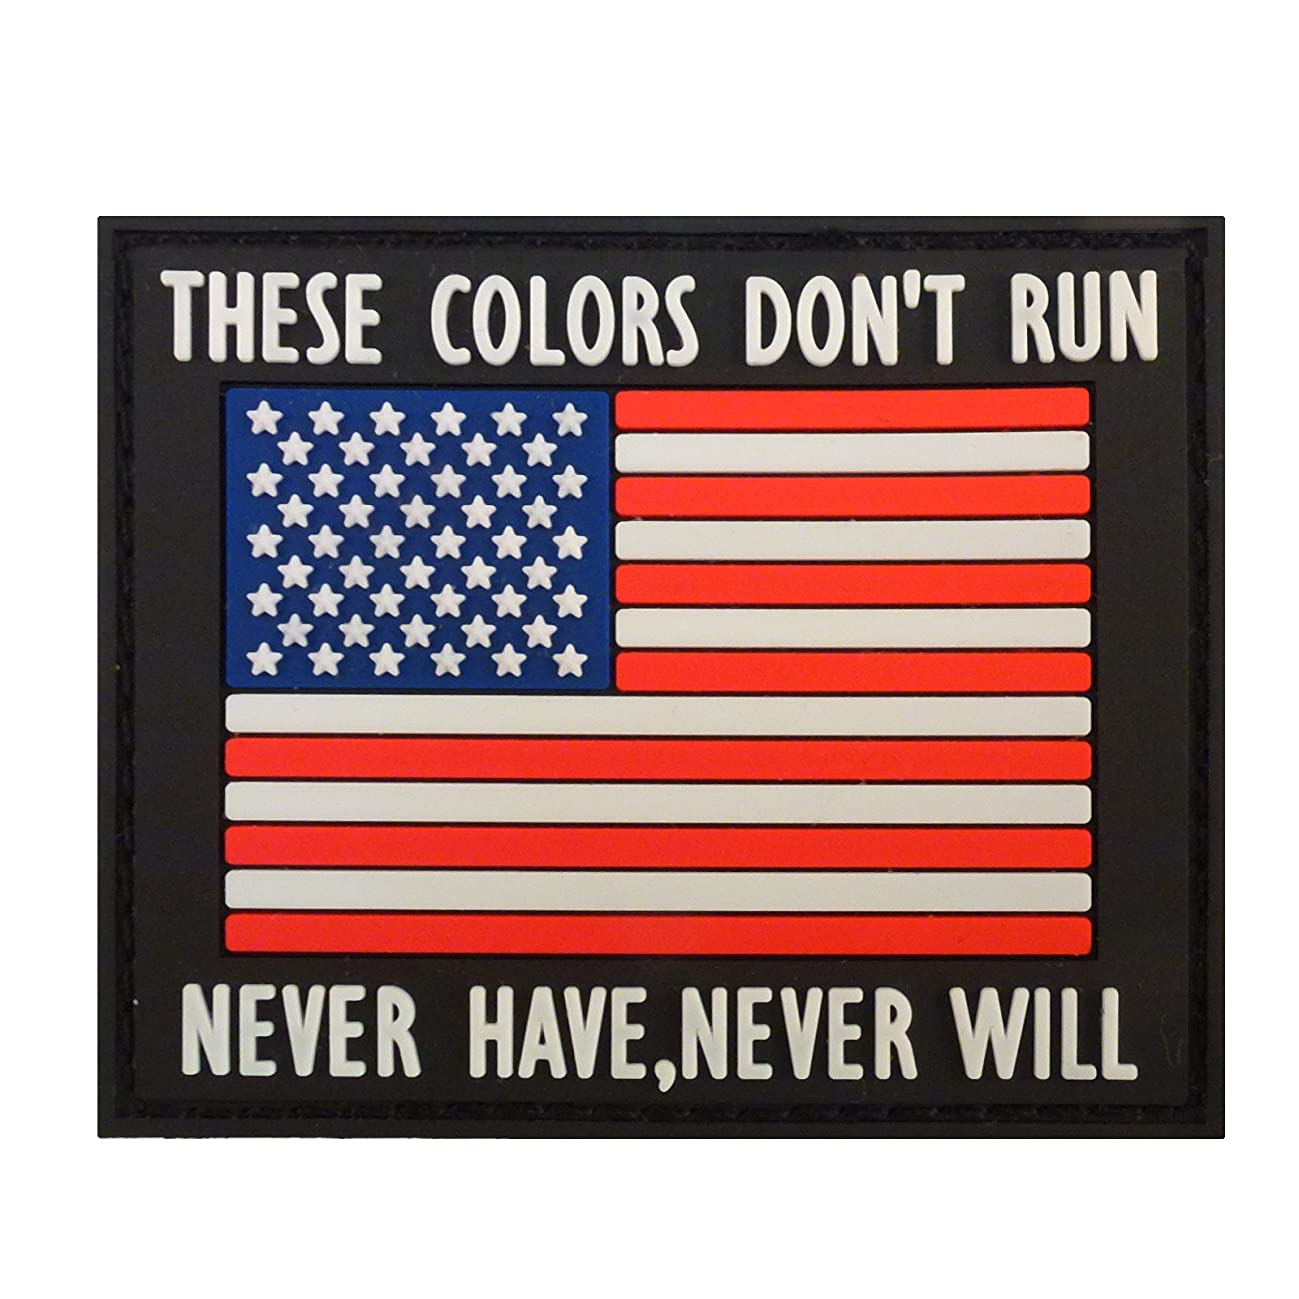 LEGEEON These Colors Don't Run American Flag Morale PVC Rubber Fastener Patch